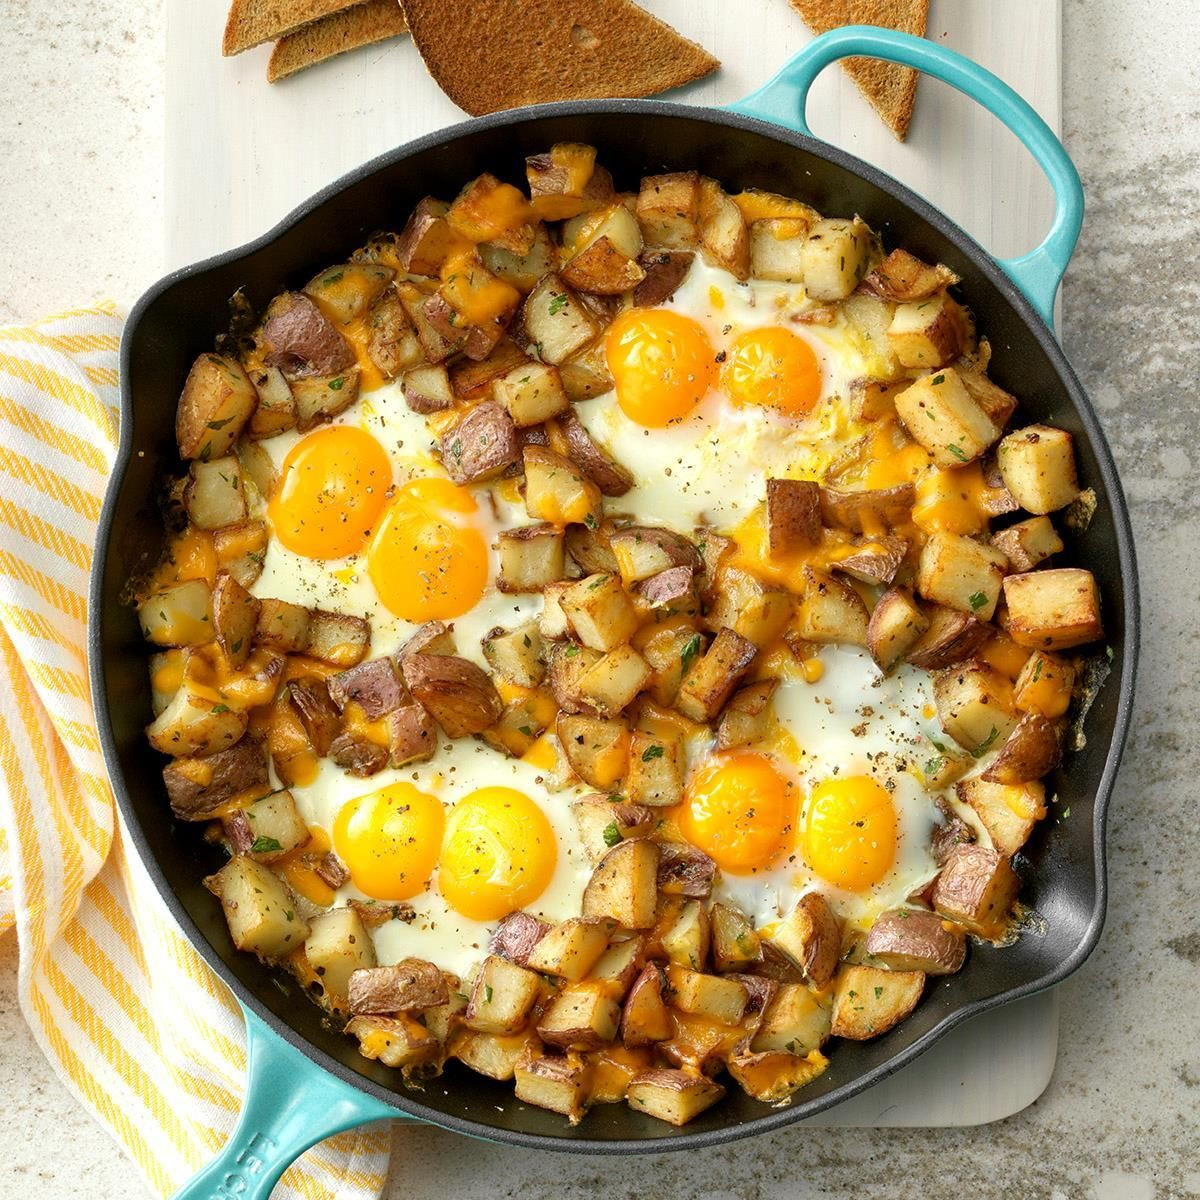 Baked Cheddar Eggs & Potatoes